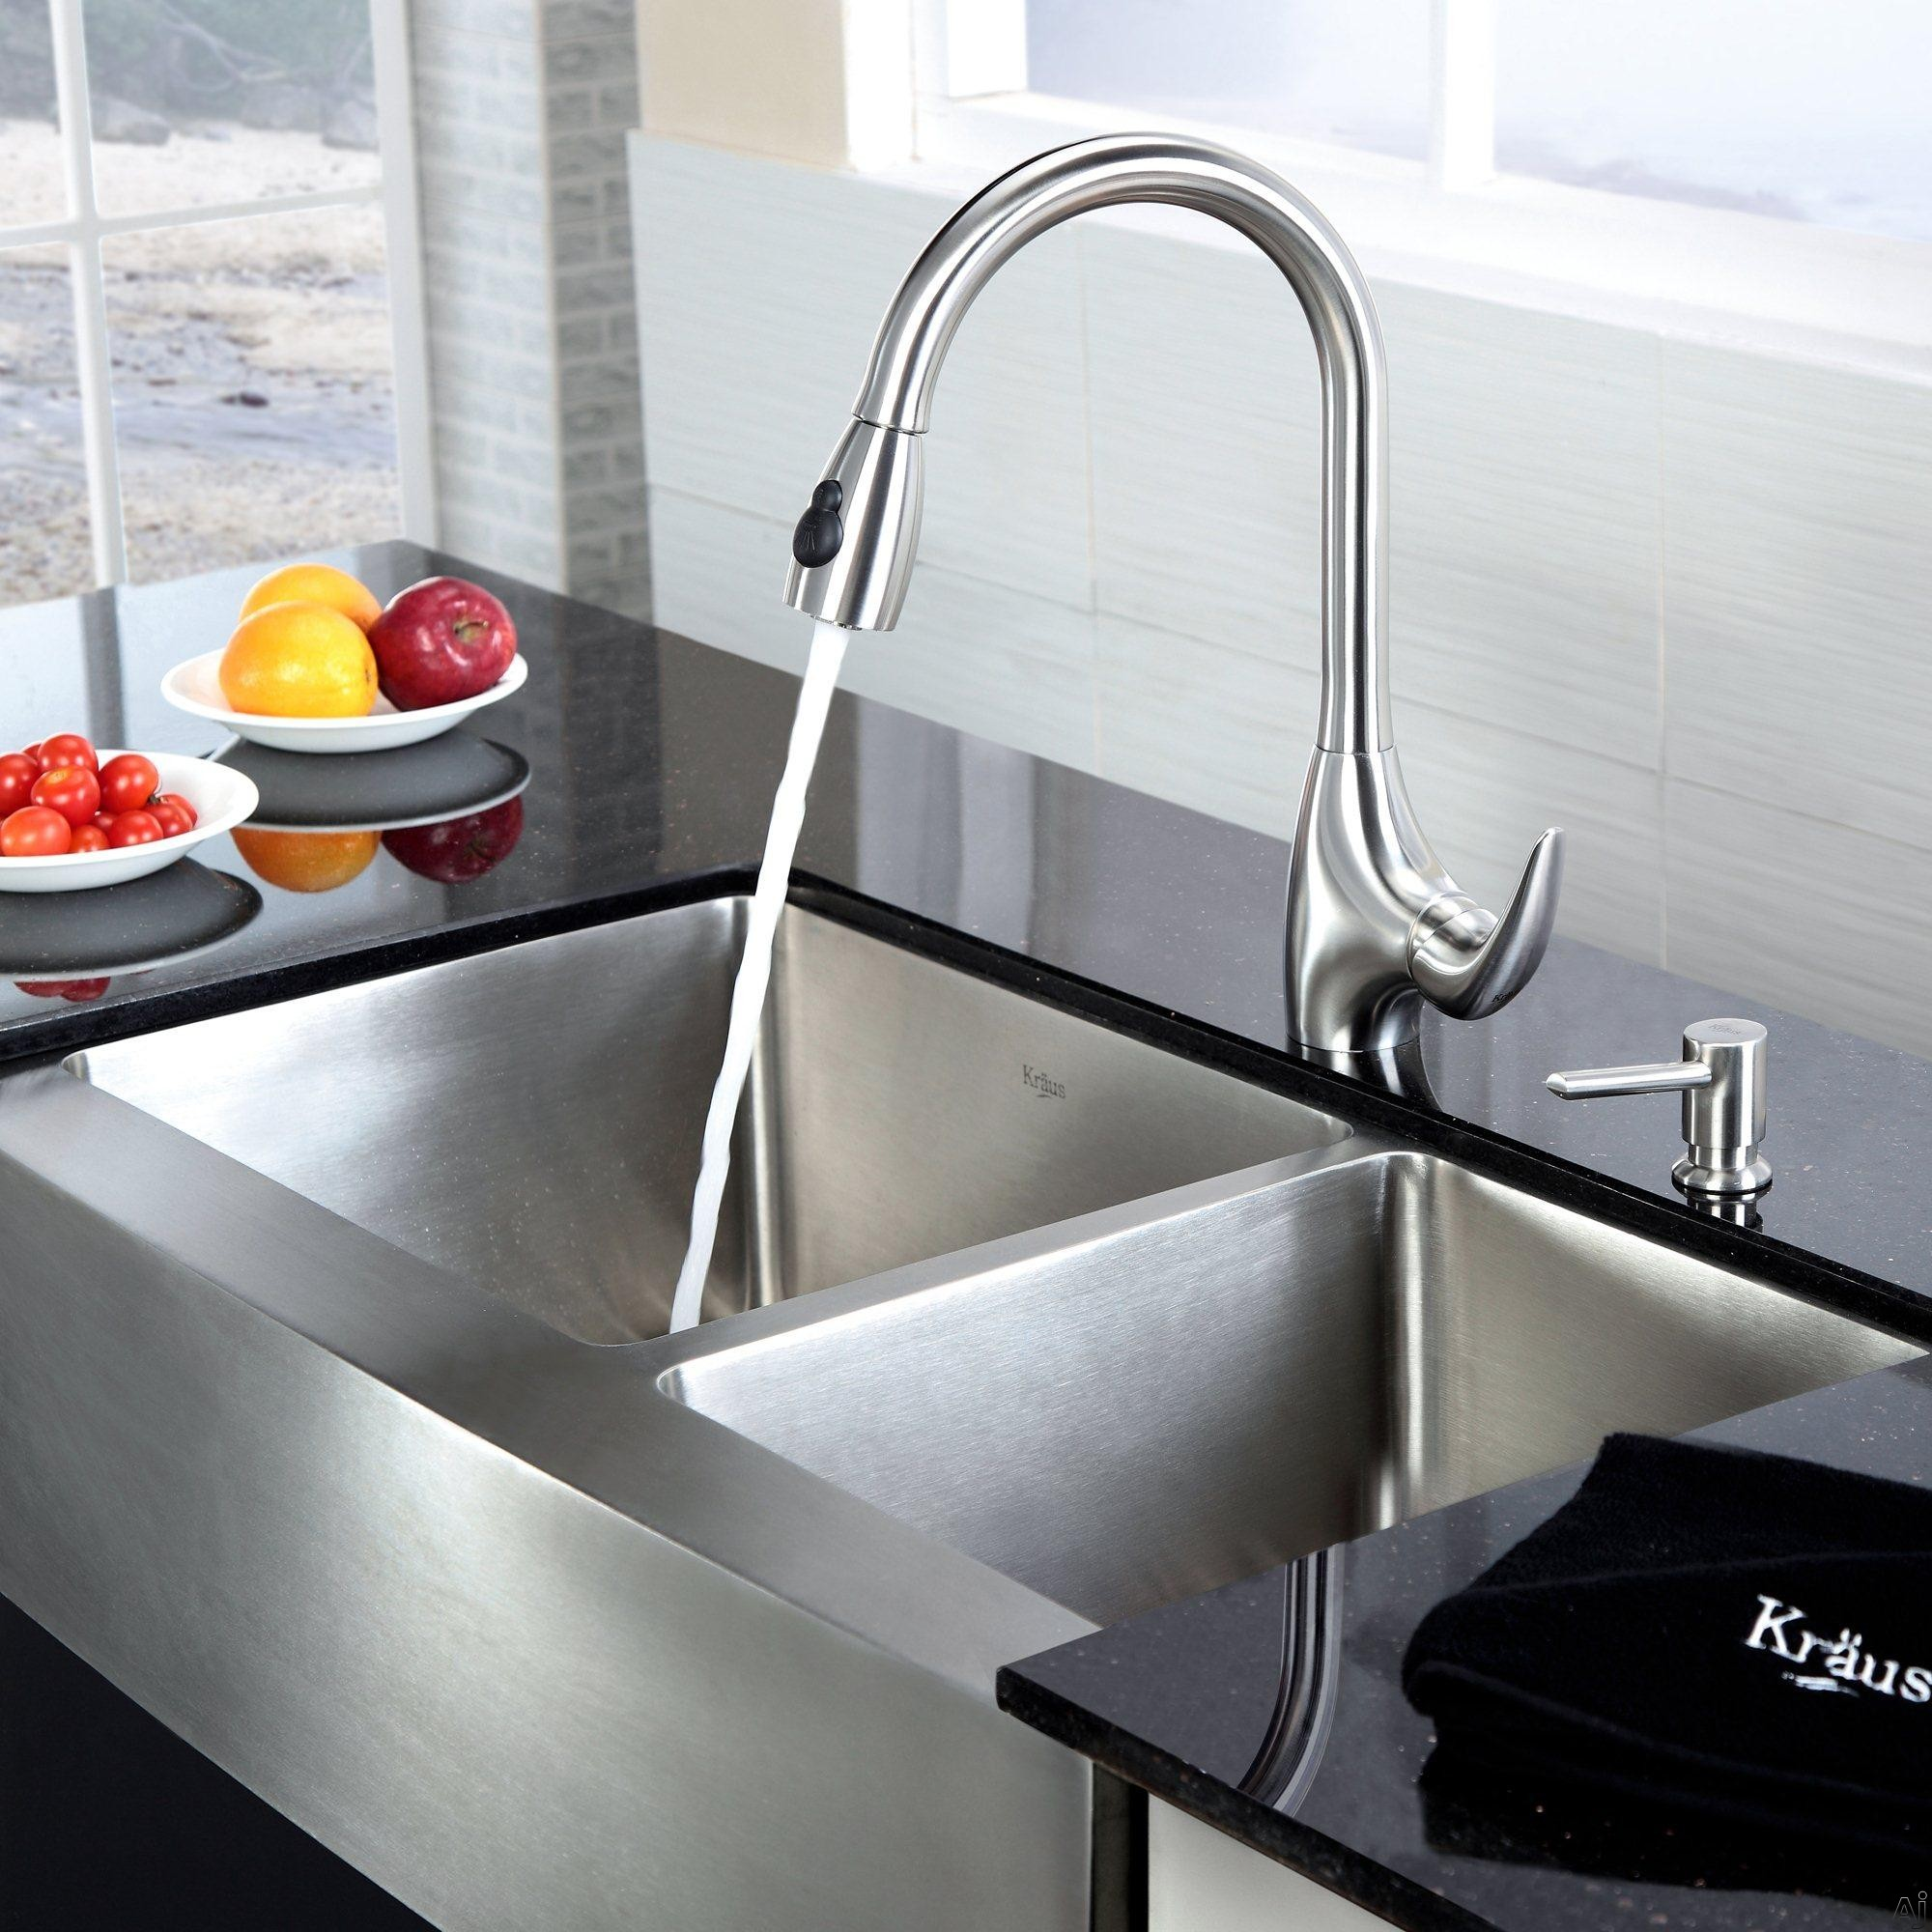 Stainless Country Sink : 36 Inch Farmhouse Double Bowl Stainless Steel Sink with Stainless ...